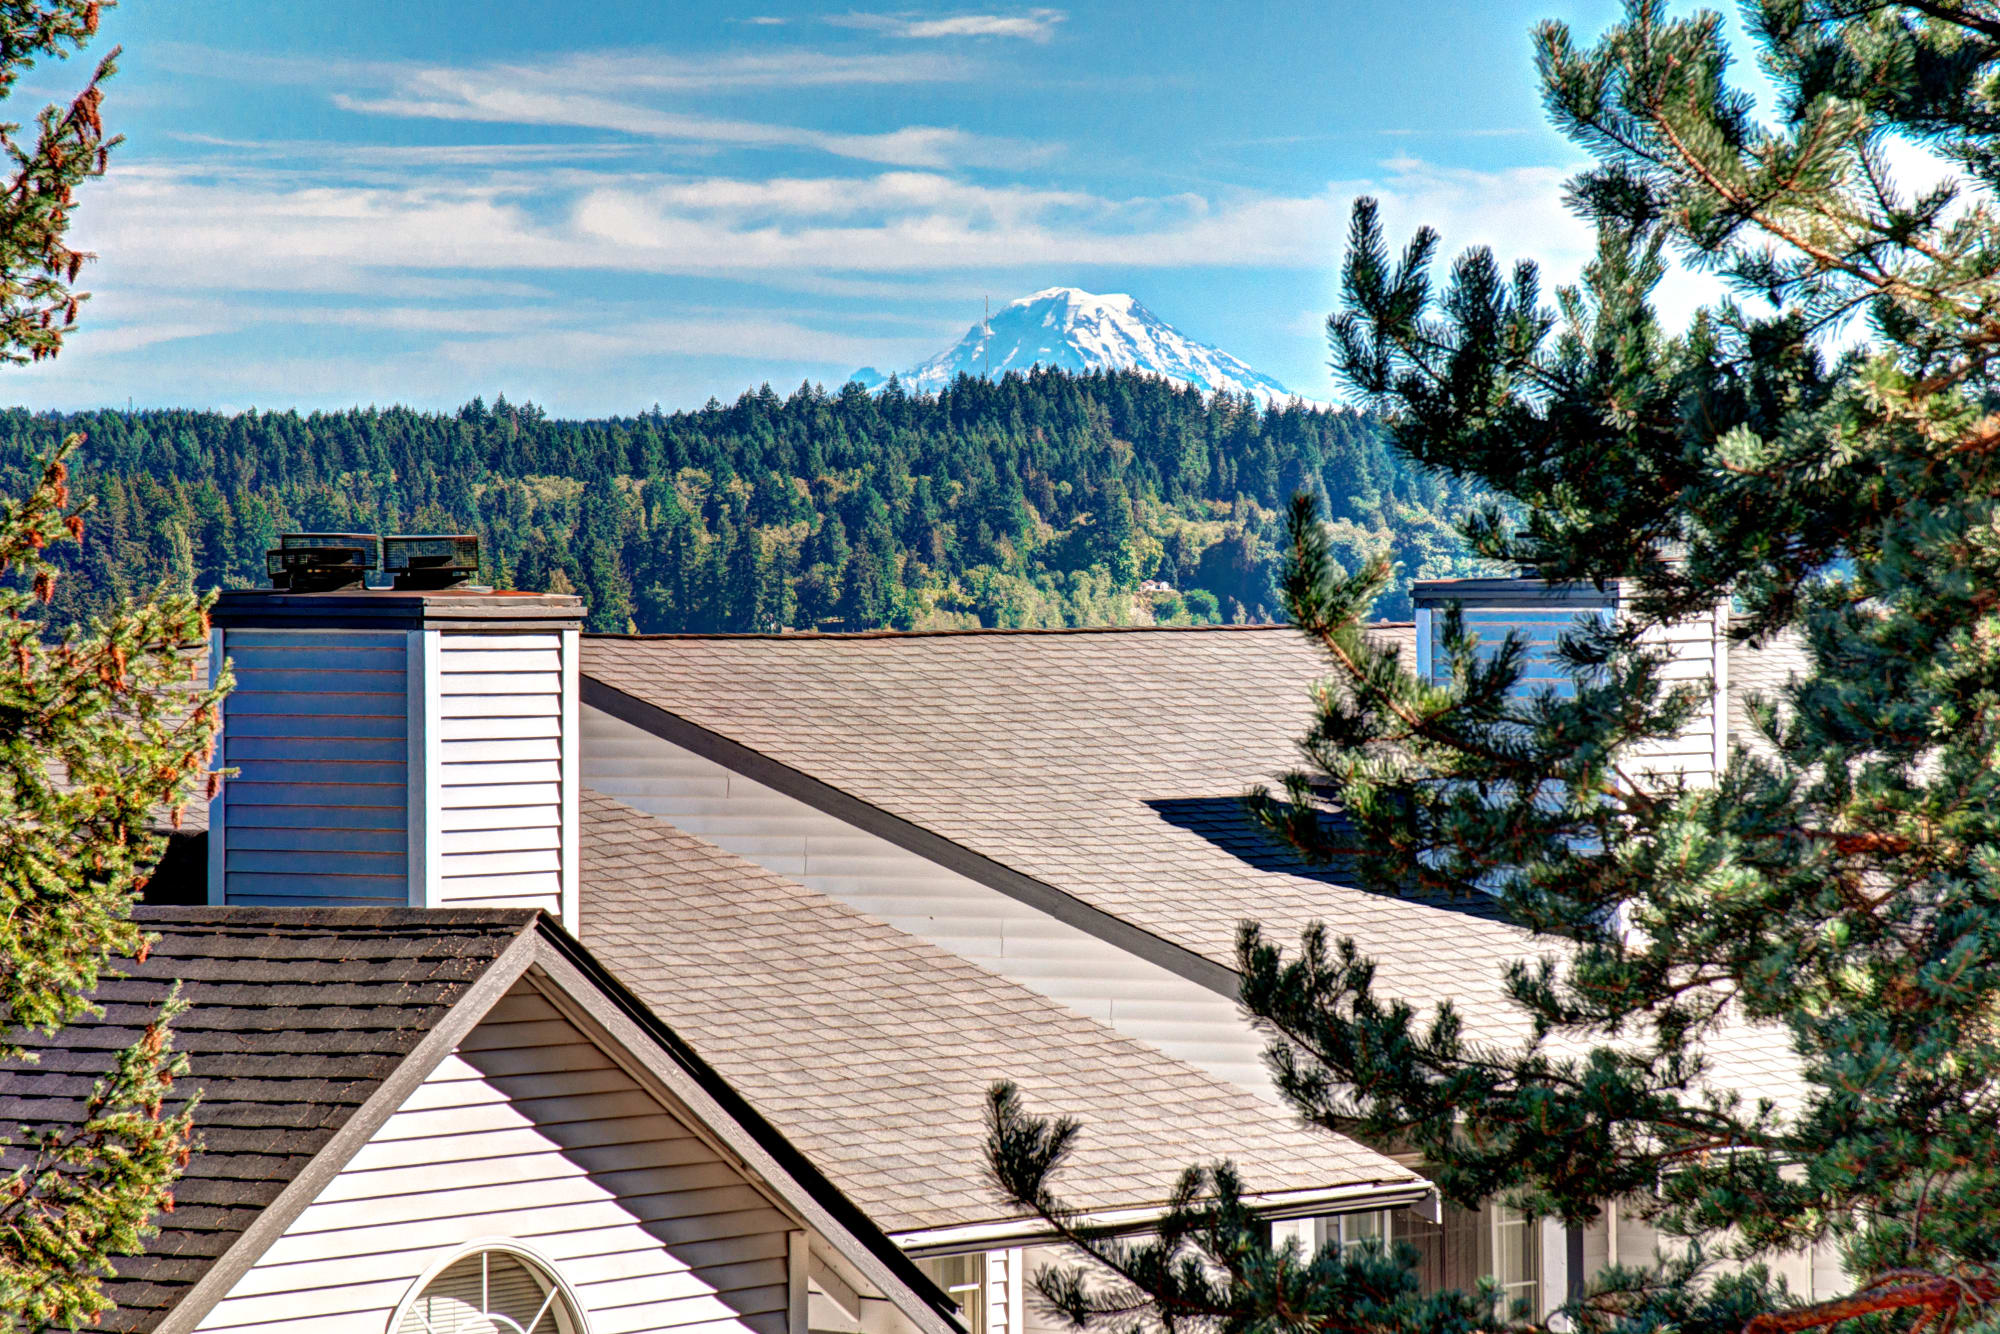 A spectacular view from Wellington Apartment Homes in Silverdale, Washington